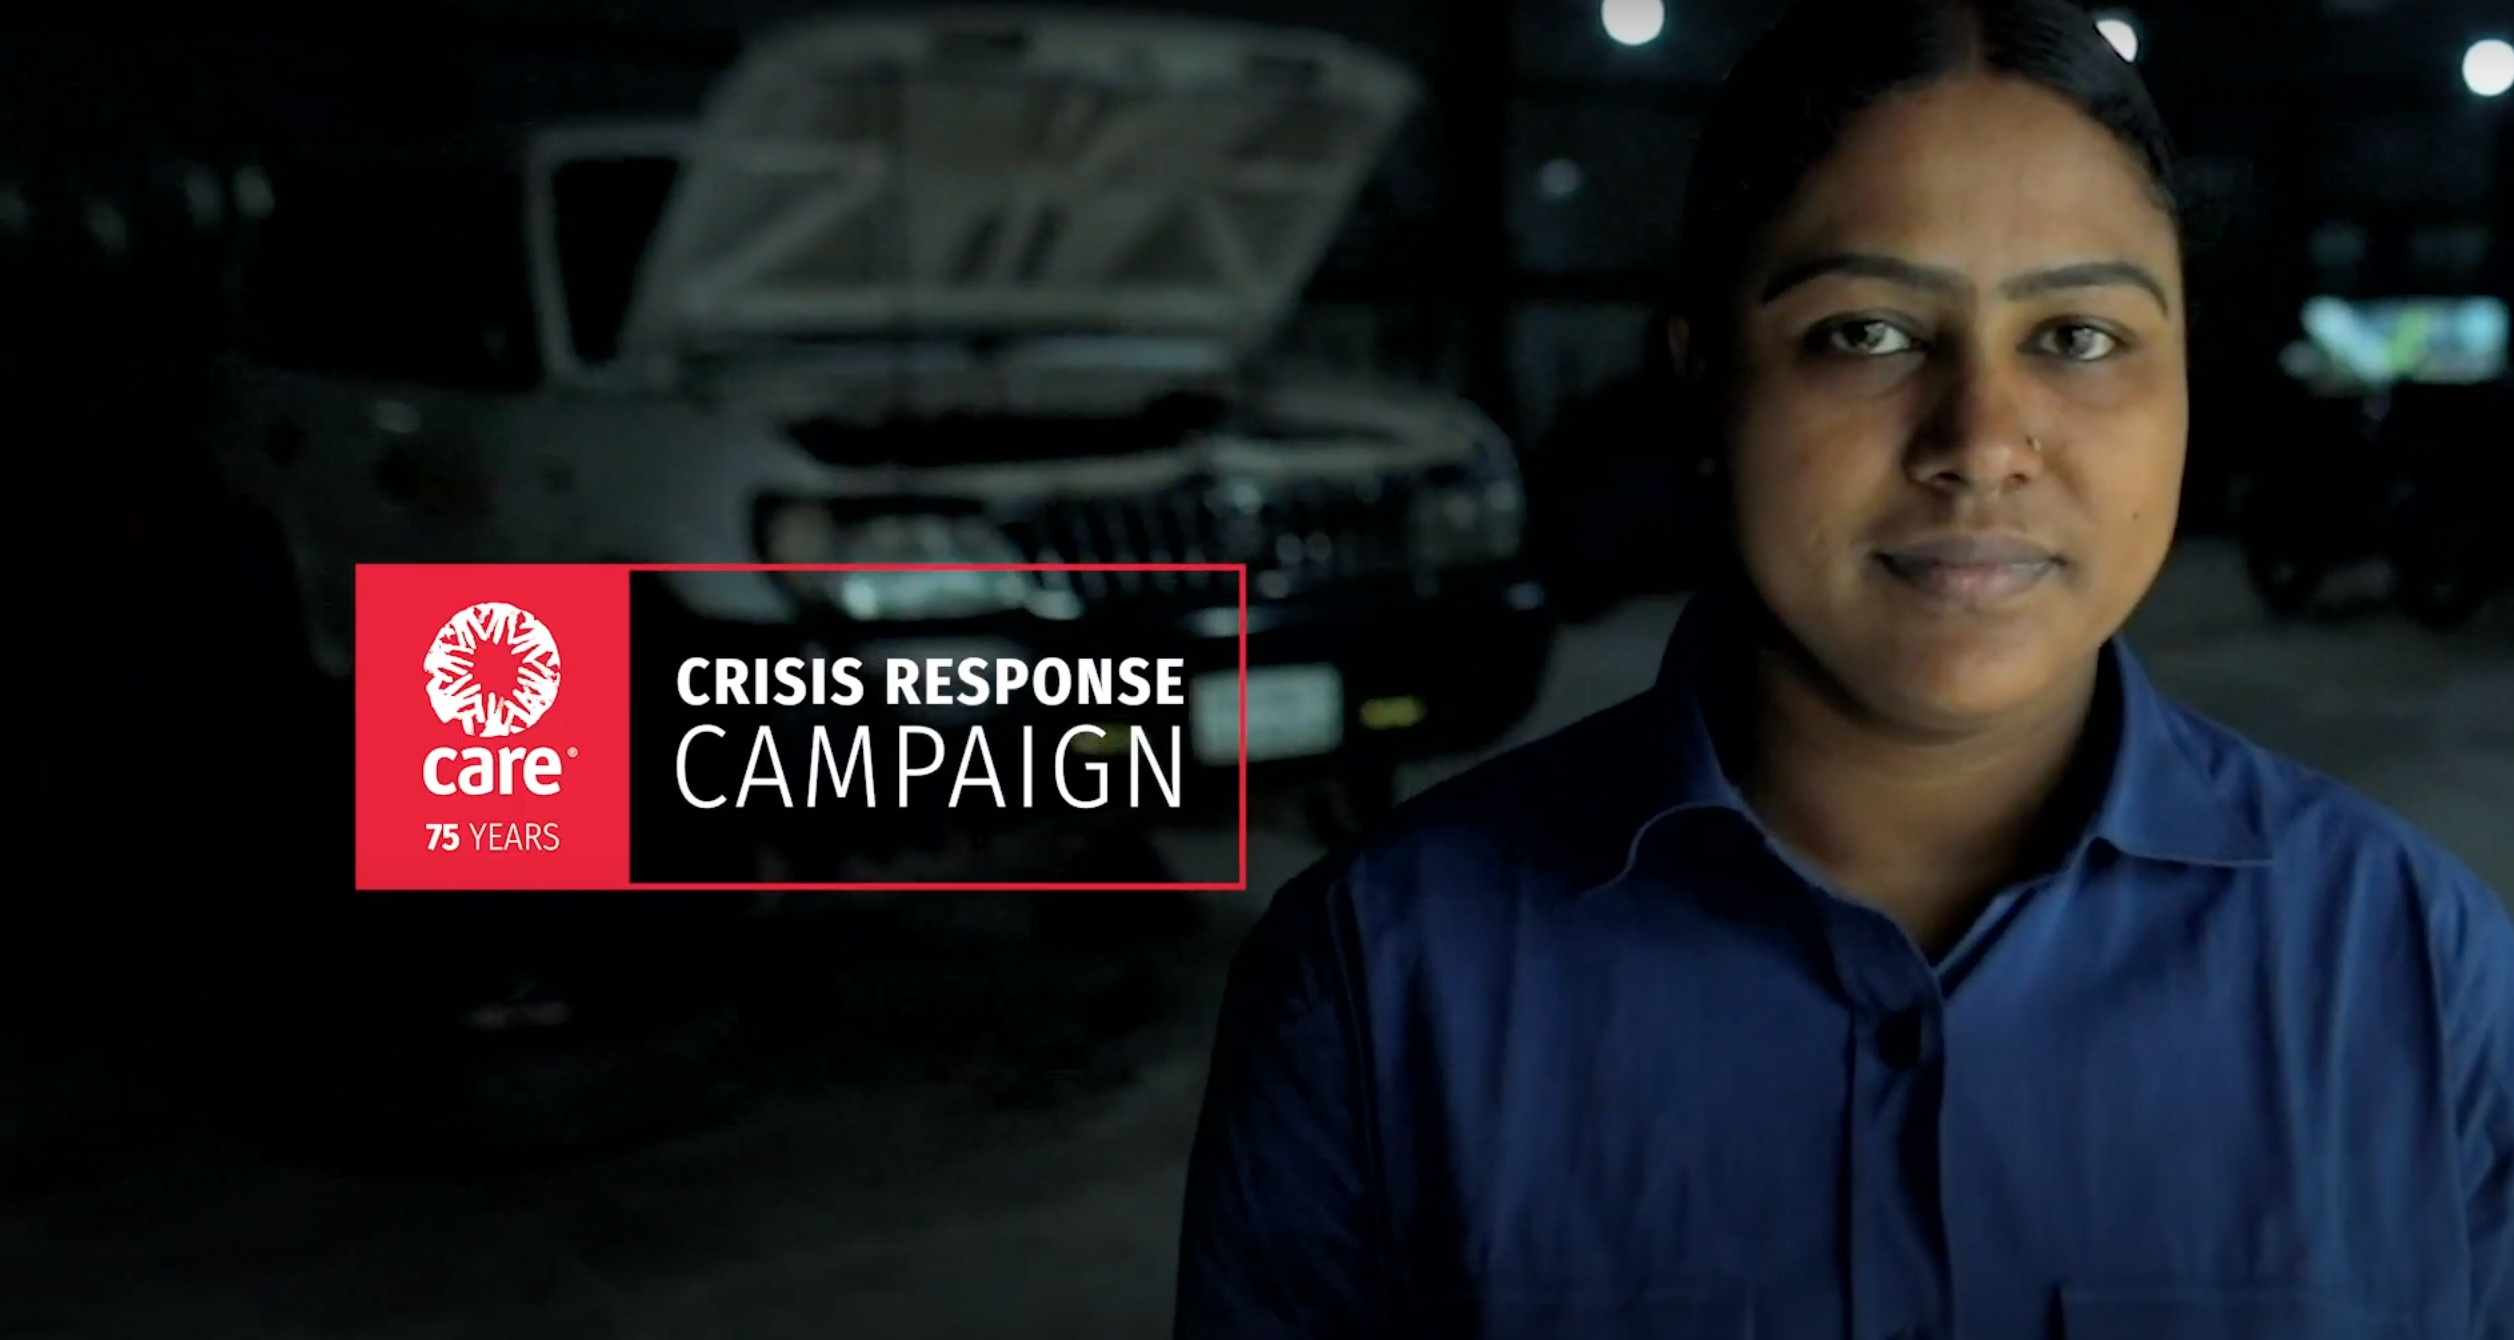 A woman wearing a dark blue mechanic's suit looks at the camera. Behind her is a car with the hood raised. Overlaid on top of the video is the CARE Crisis Response Campaign logo